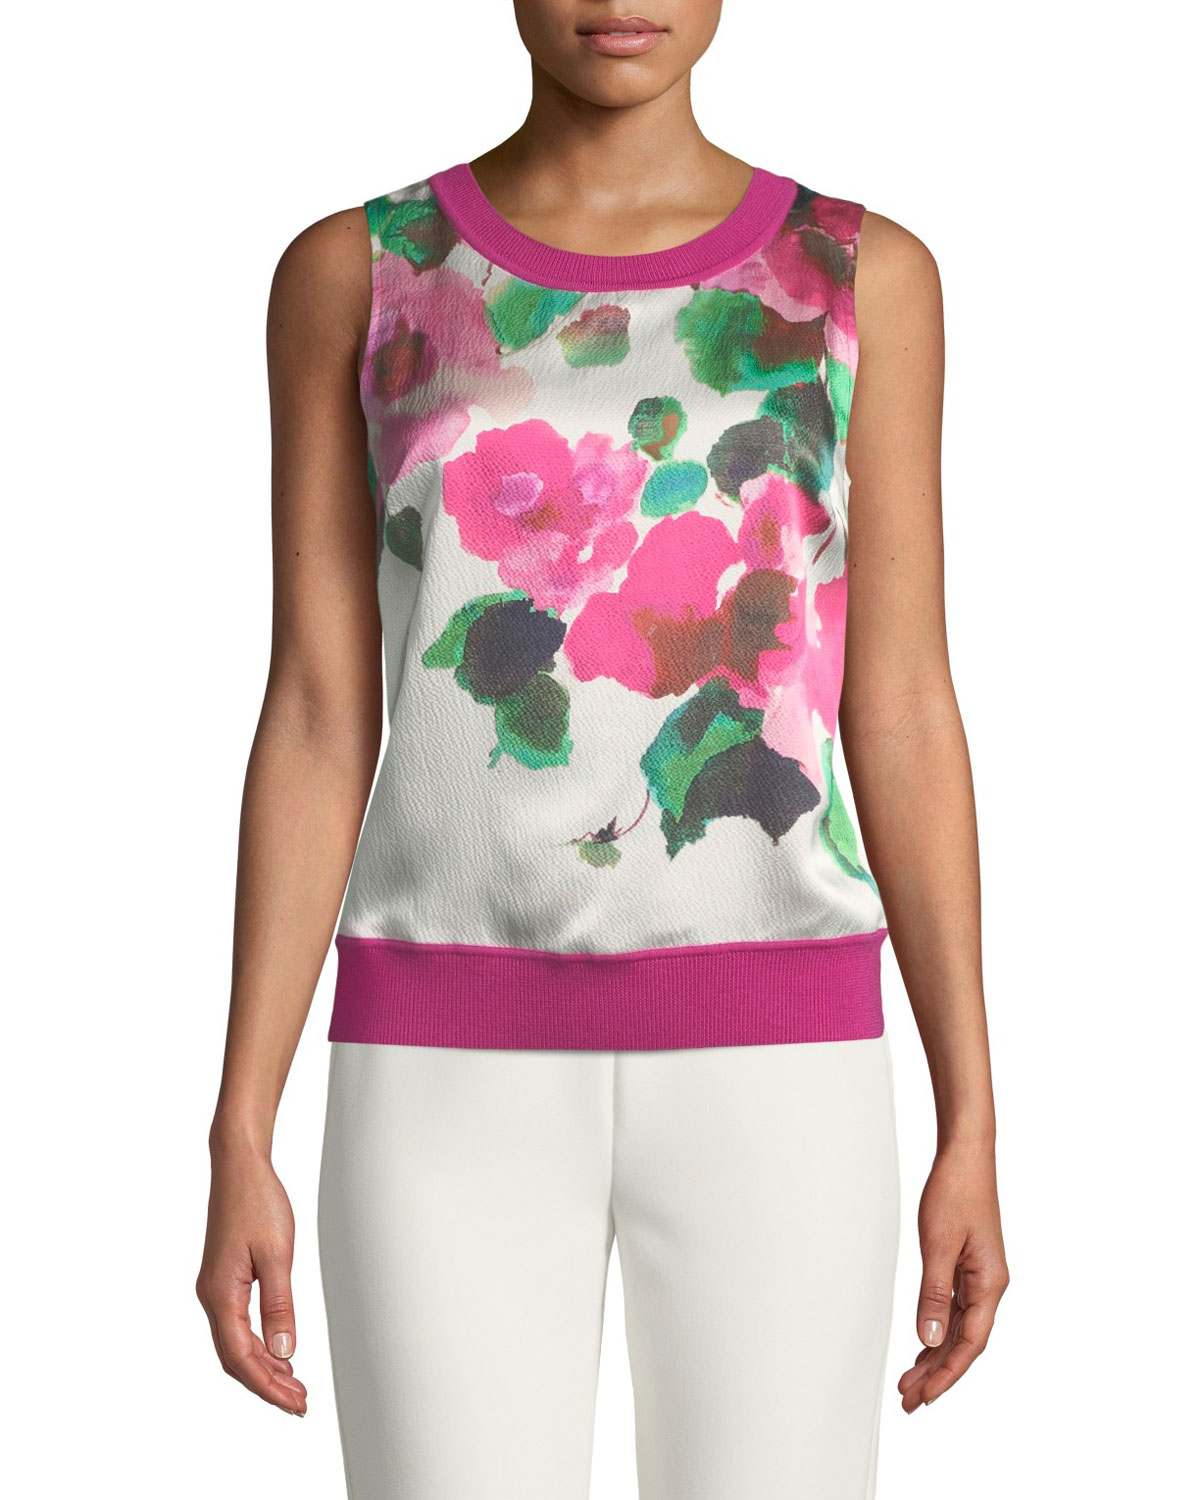 Merino Jersey Knit Shell Top with Floral Silk Panel